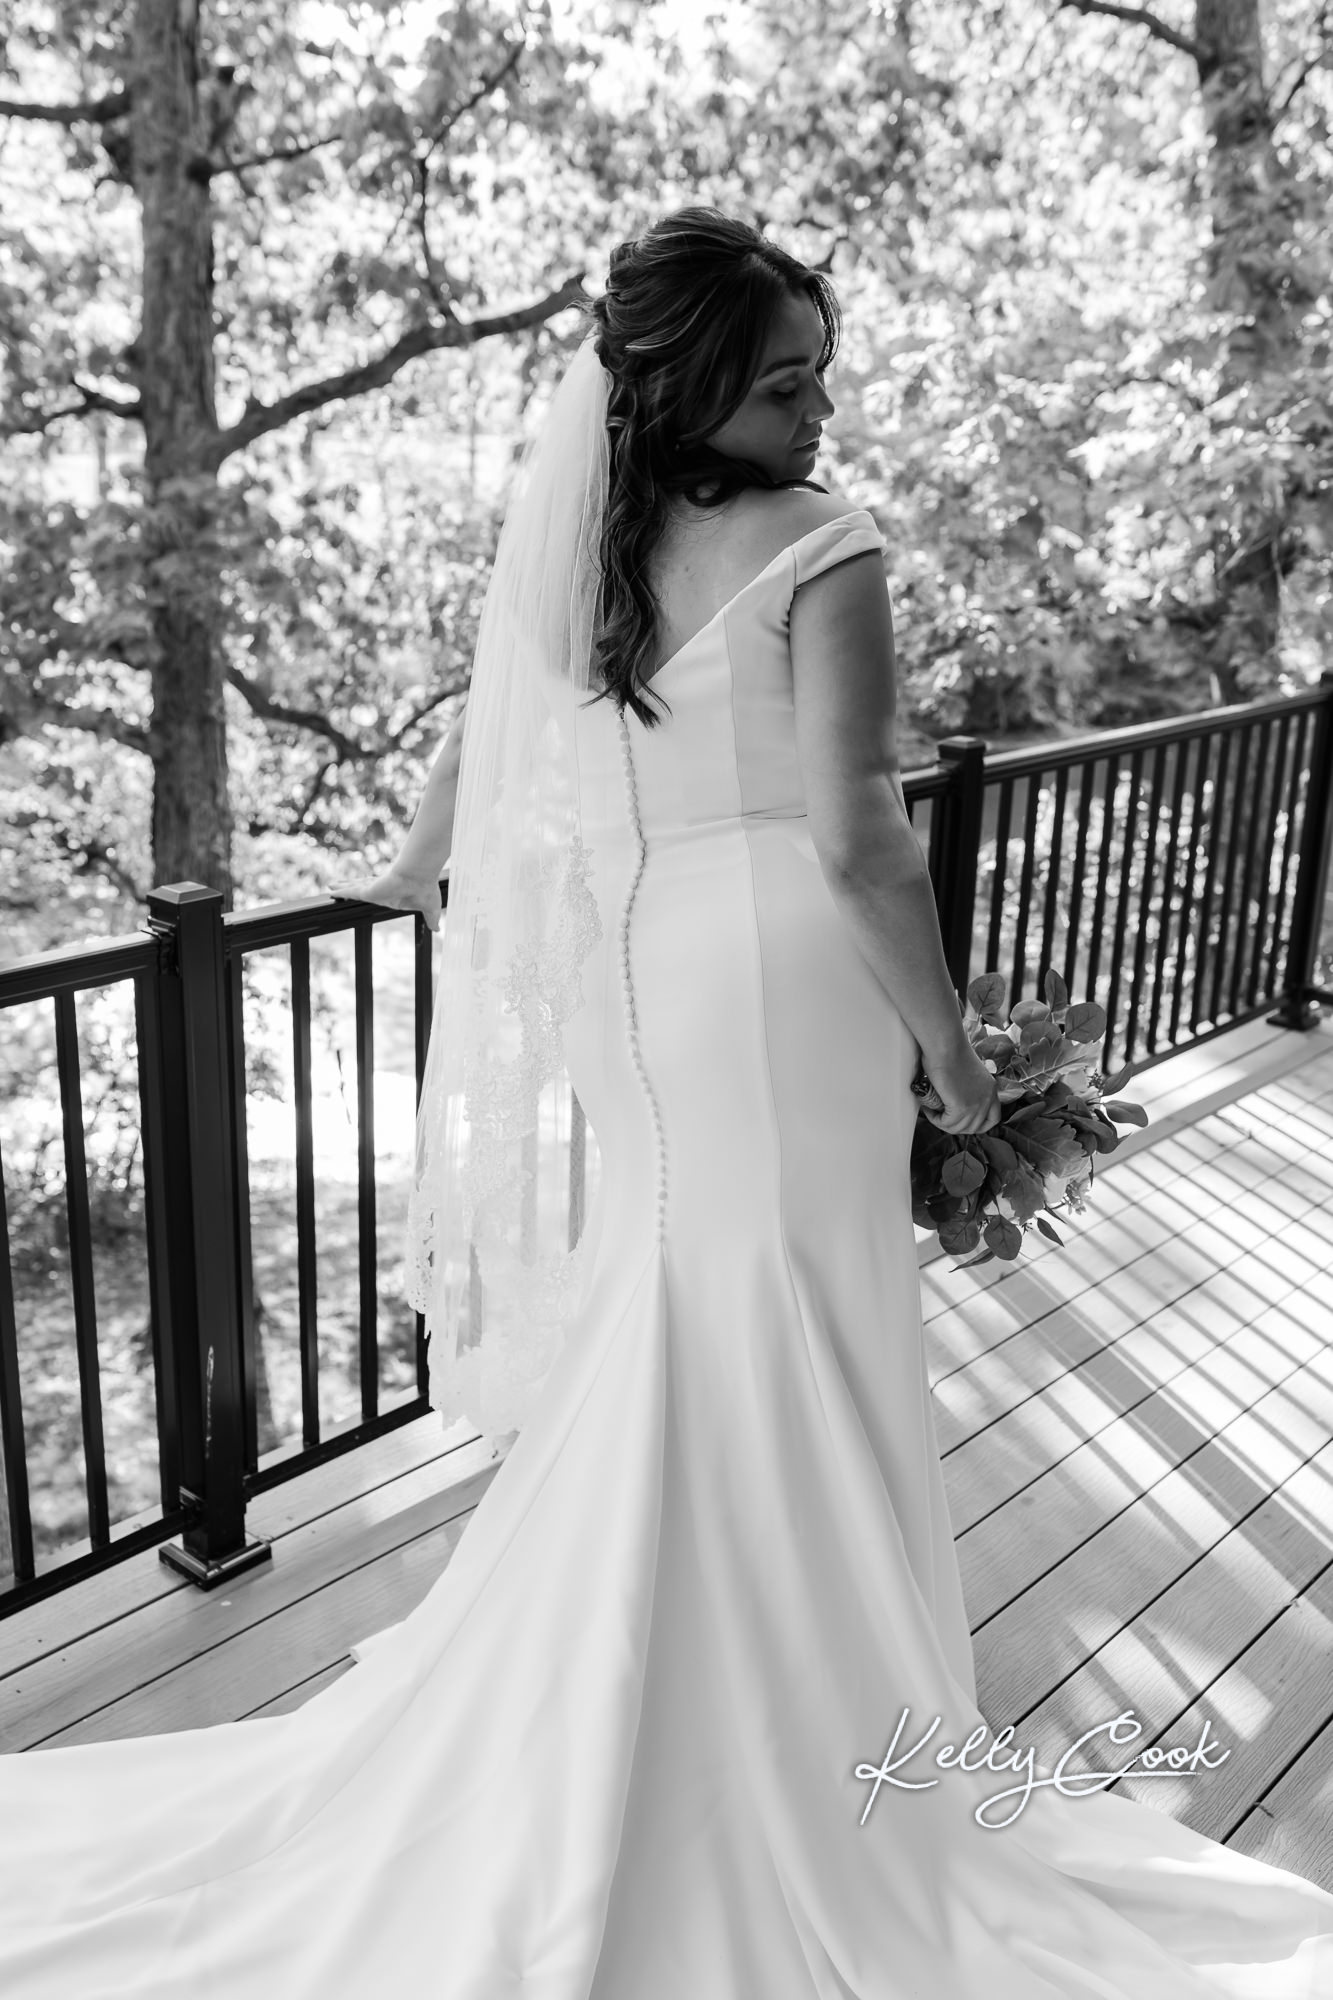 Black and white portrait of a bride before her wedding